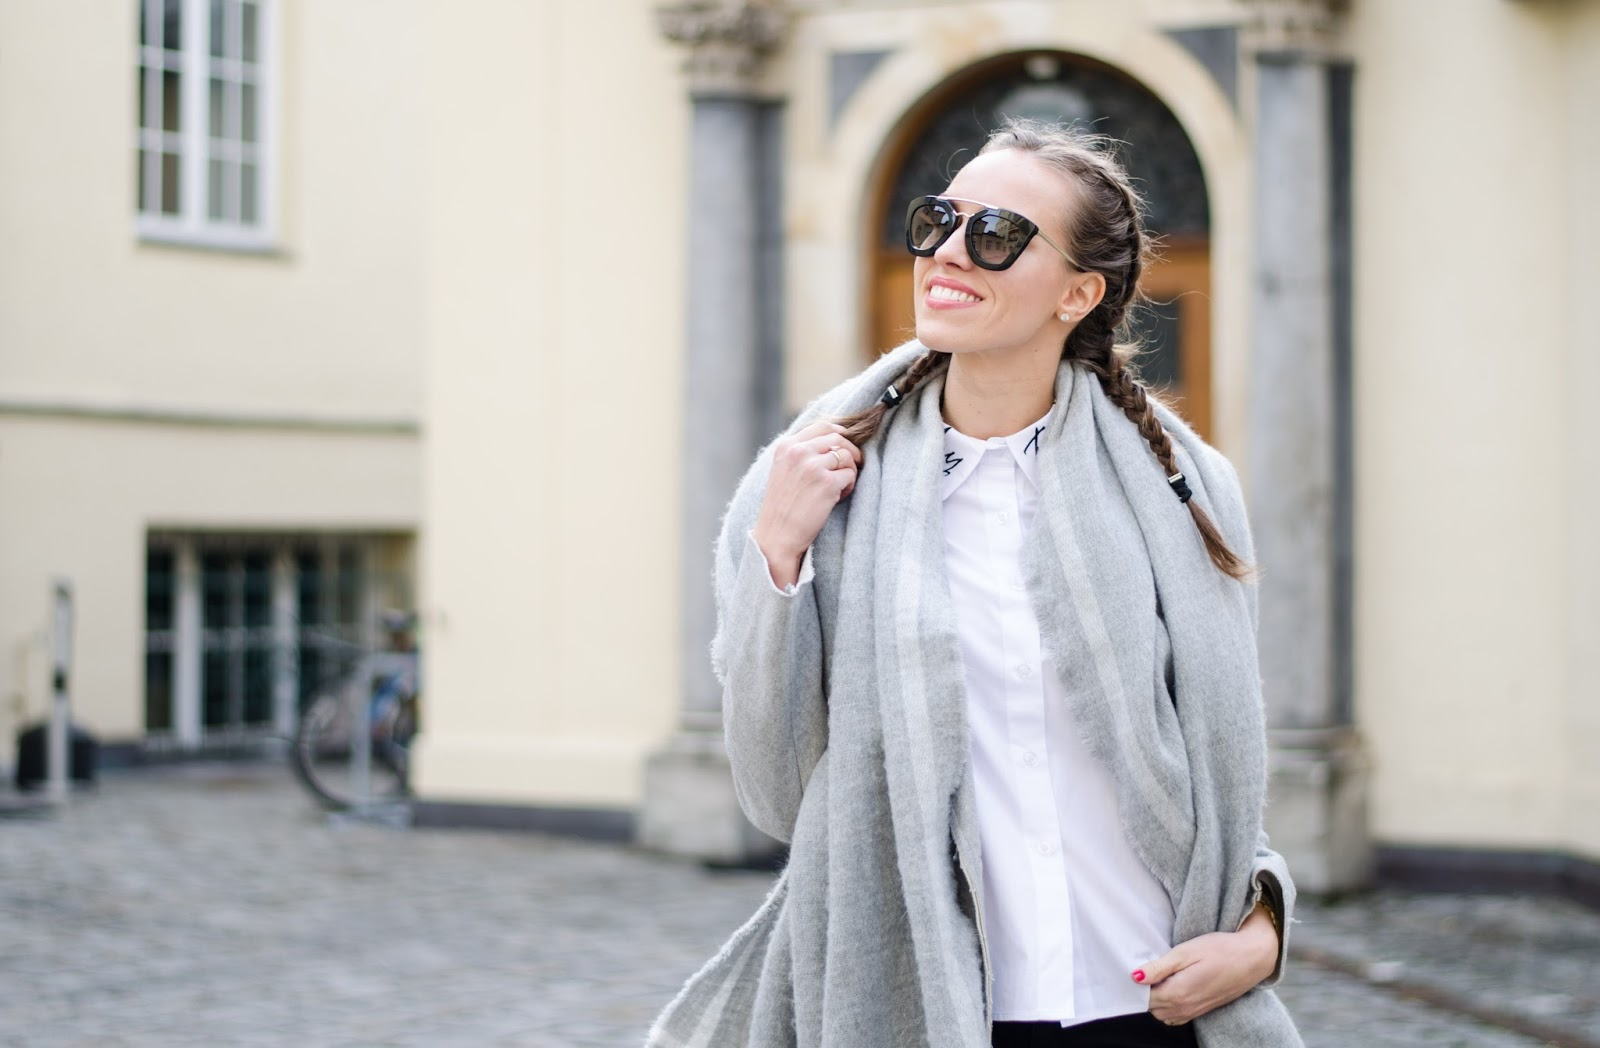 kristjaana mere gray wool coat white collar shirt french braids